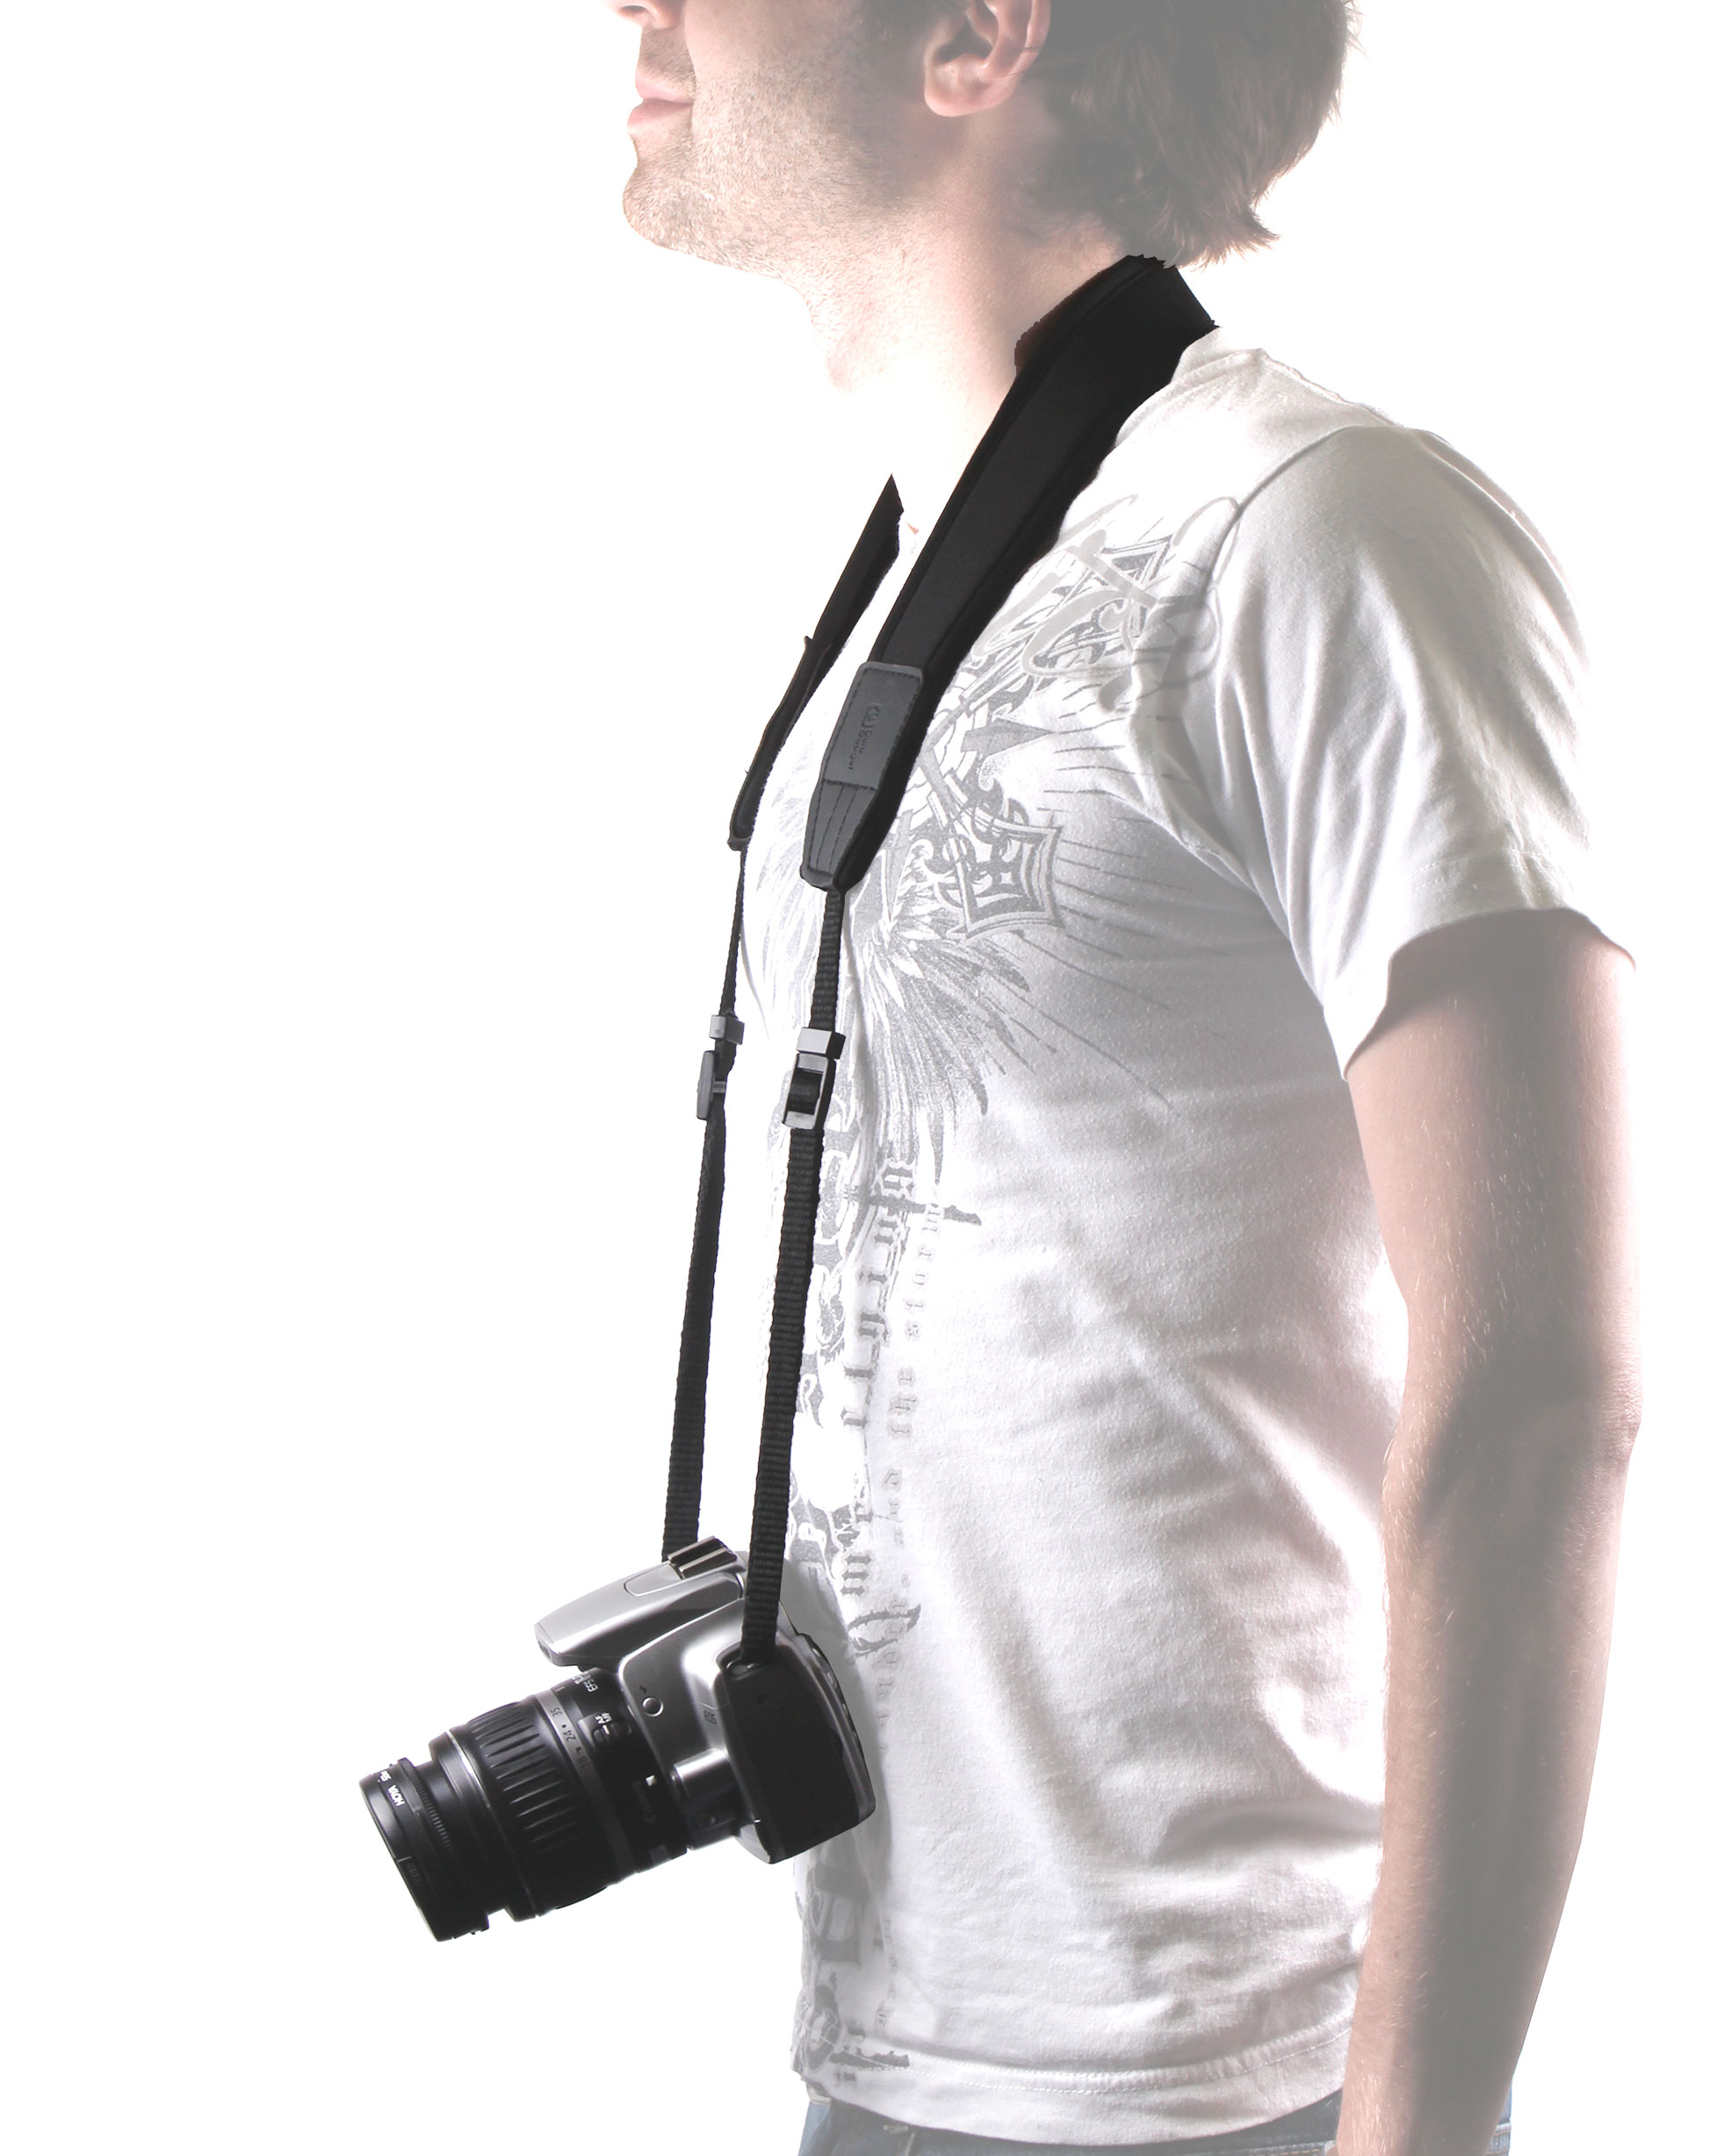 SLR Camera Strap For Panasonic Lumix DMC-GF5, GH1, GH2 With Padded Neck Cushion Enlarged Preview